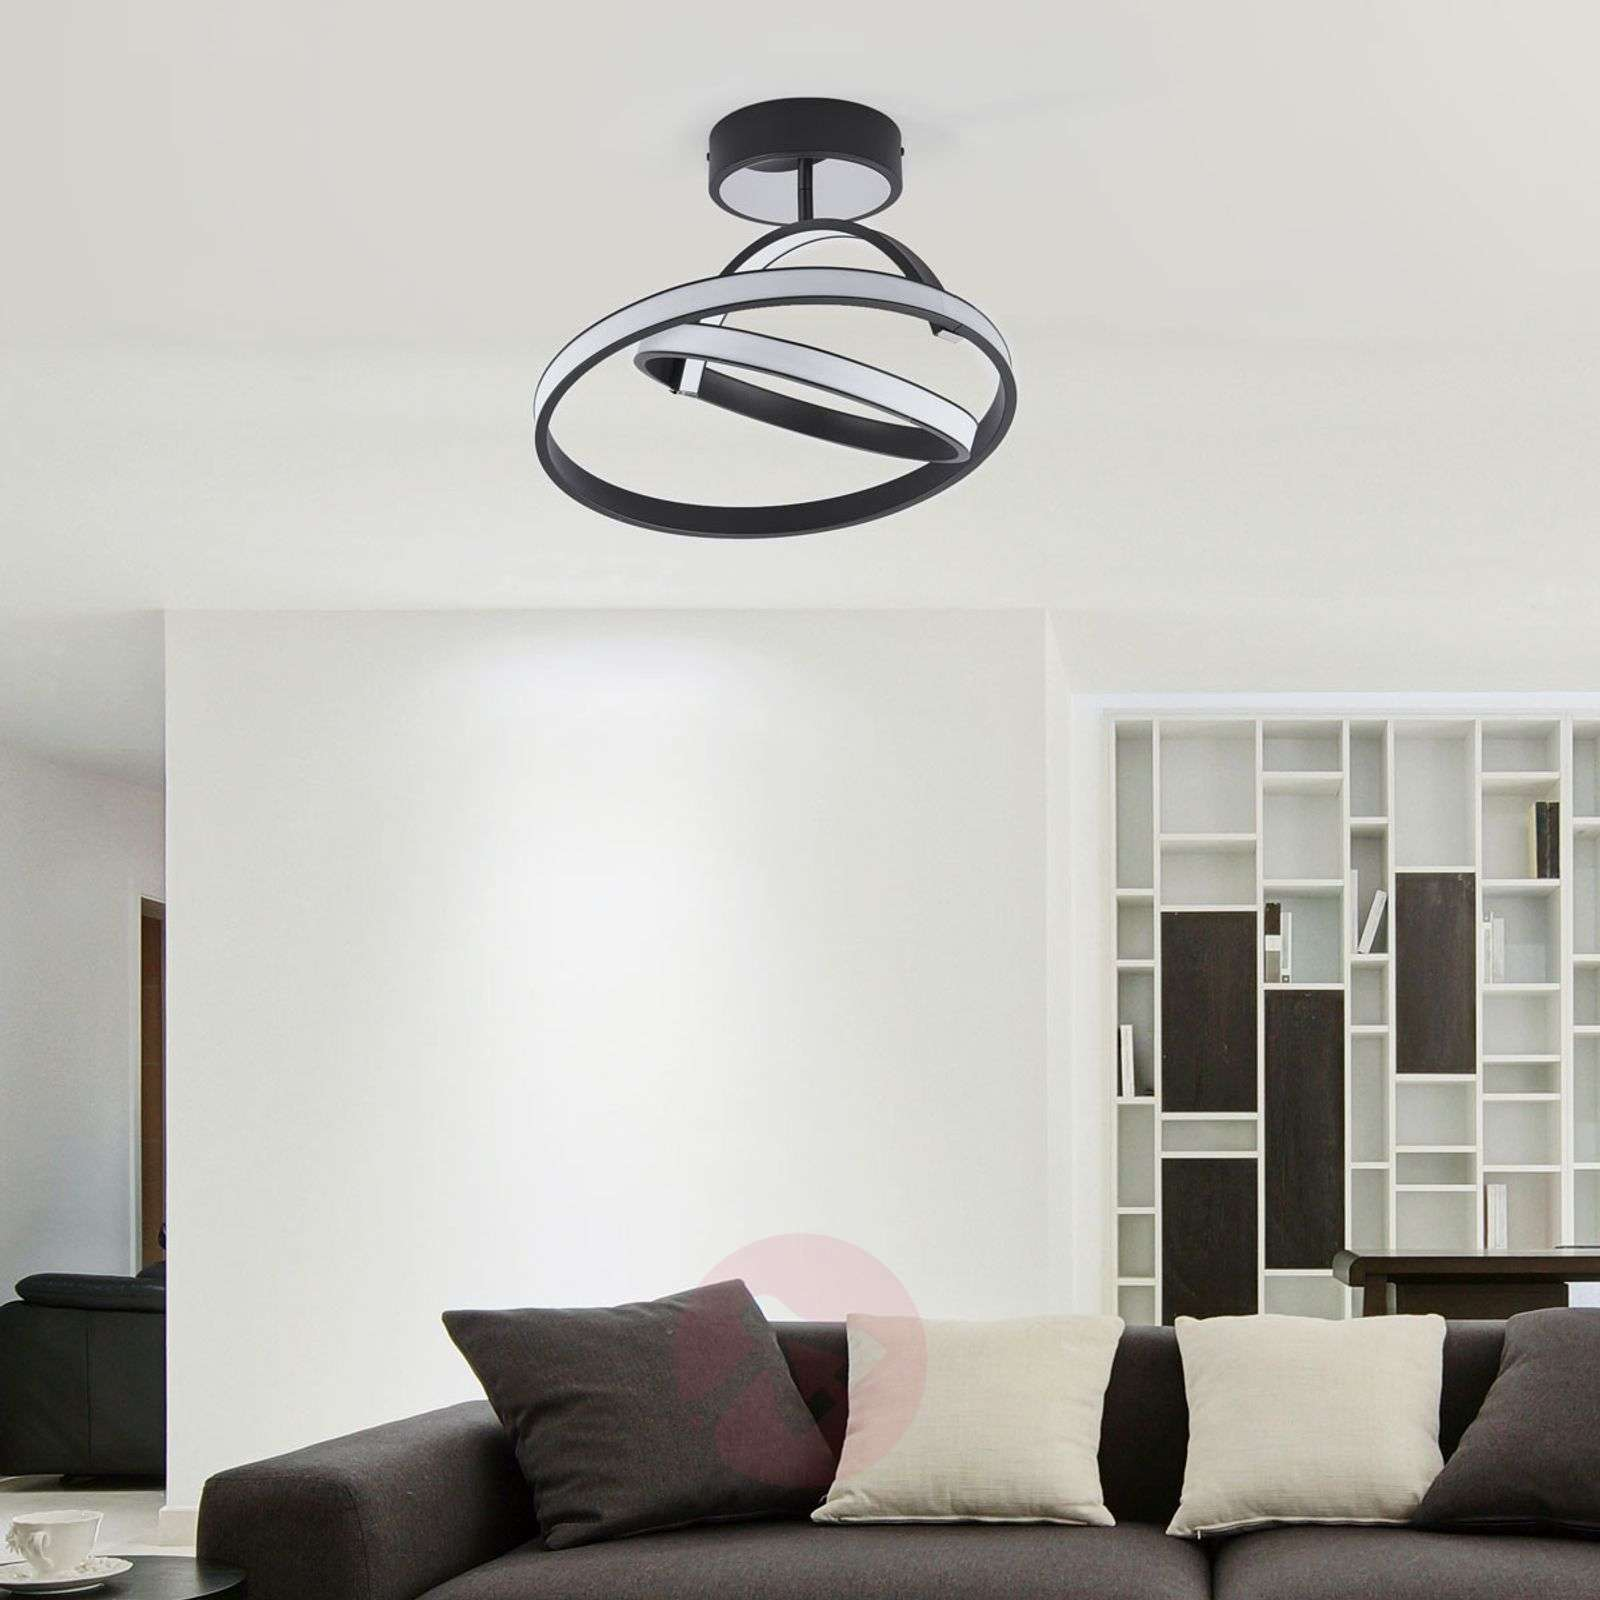 ... Largo Futuristic LED Ceiling Light In Black 6089012 01 ... Part 70